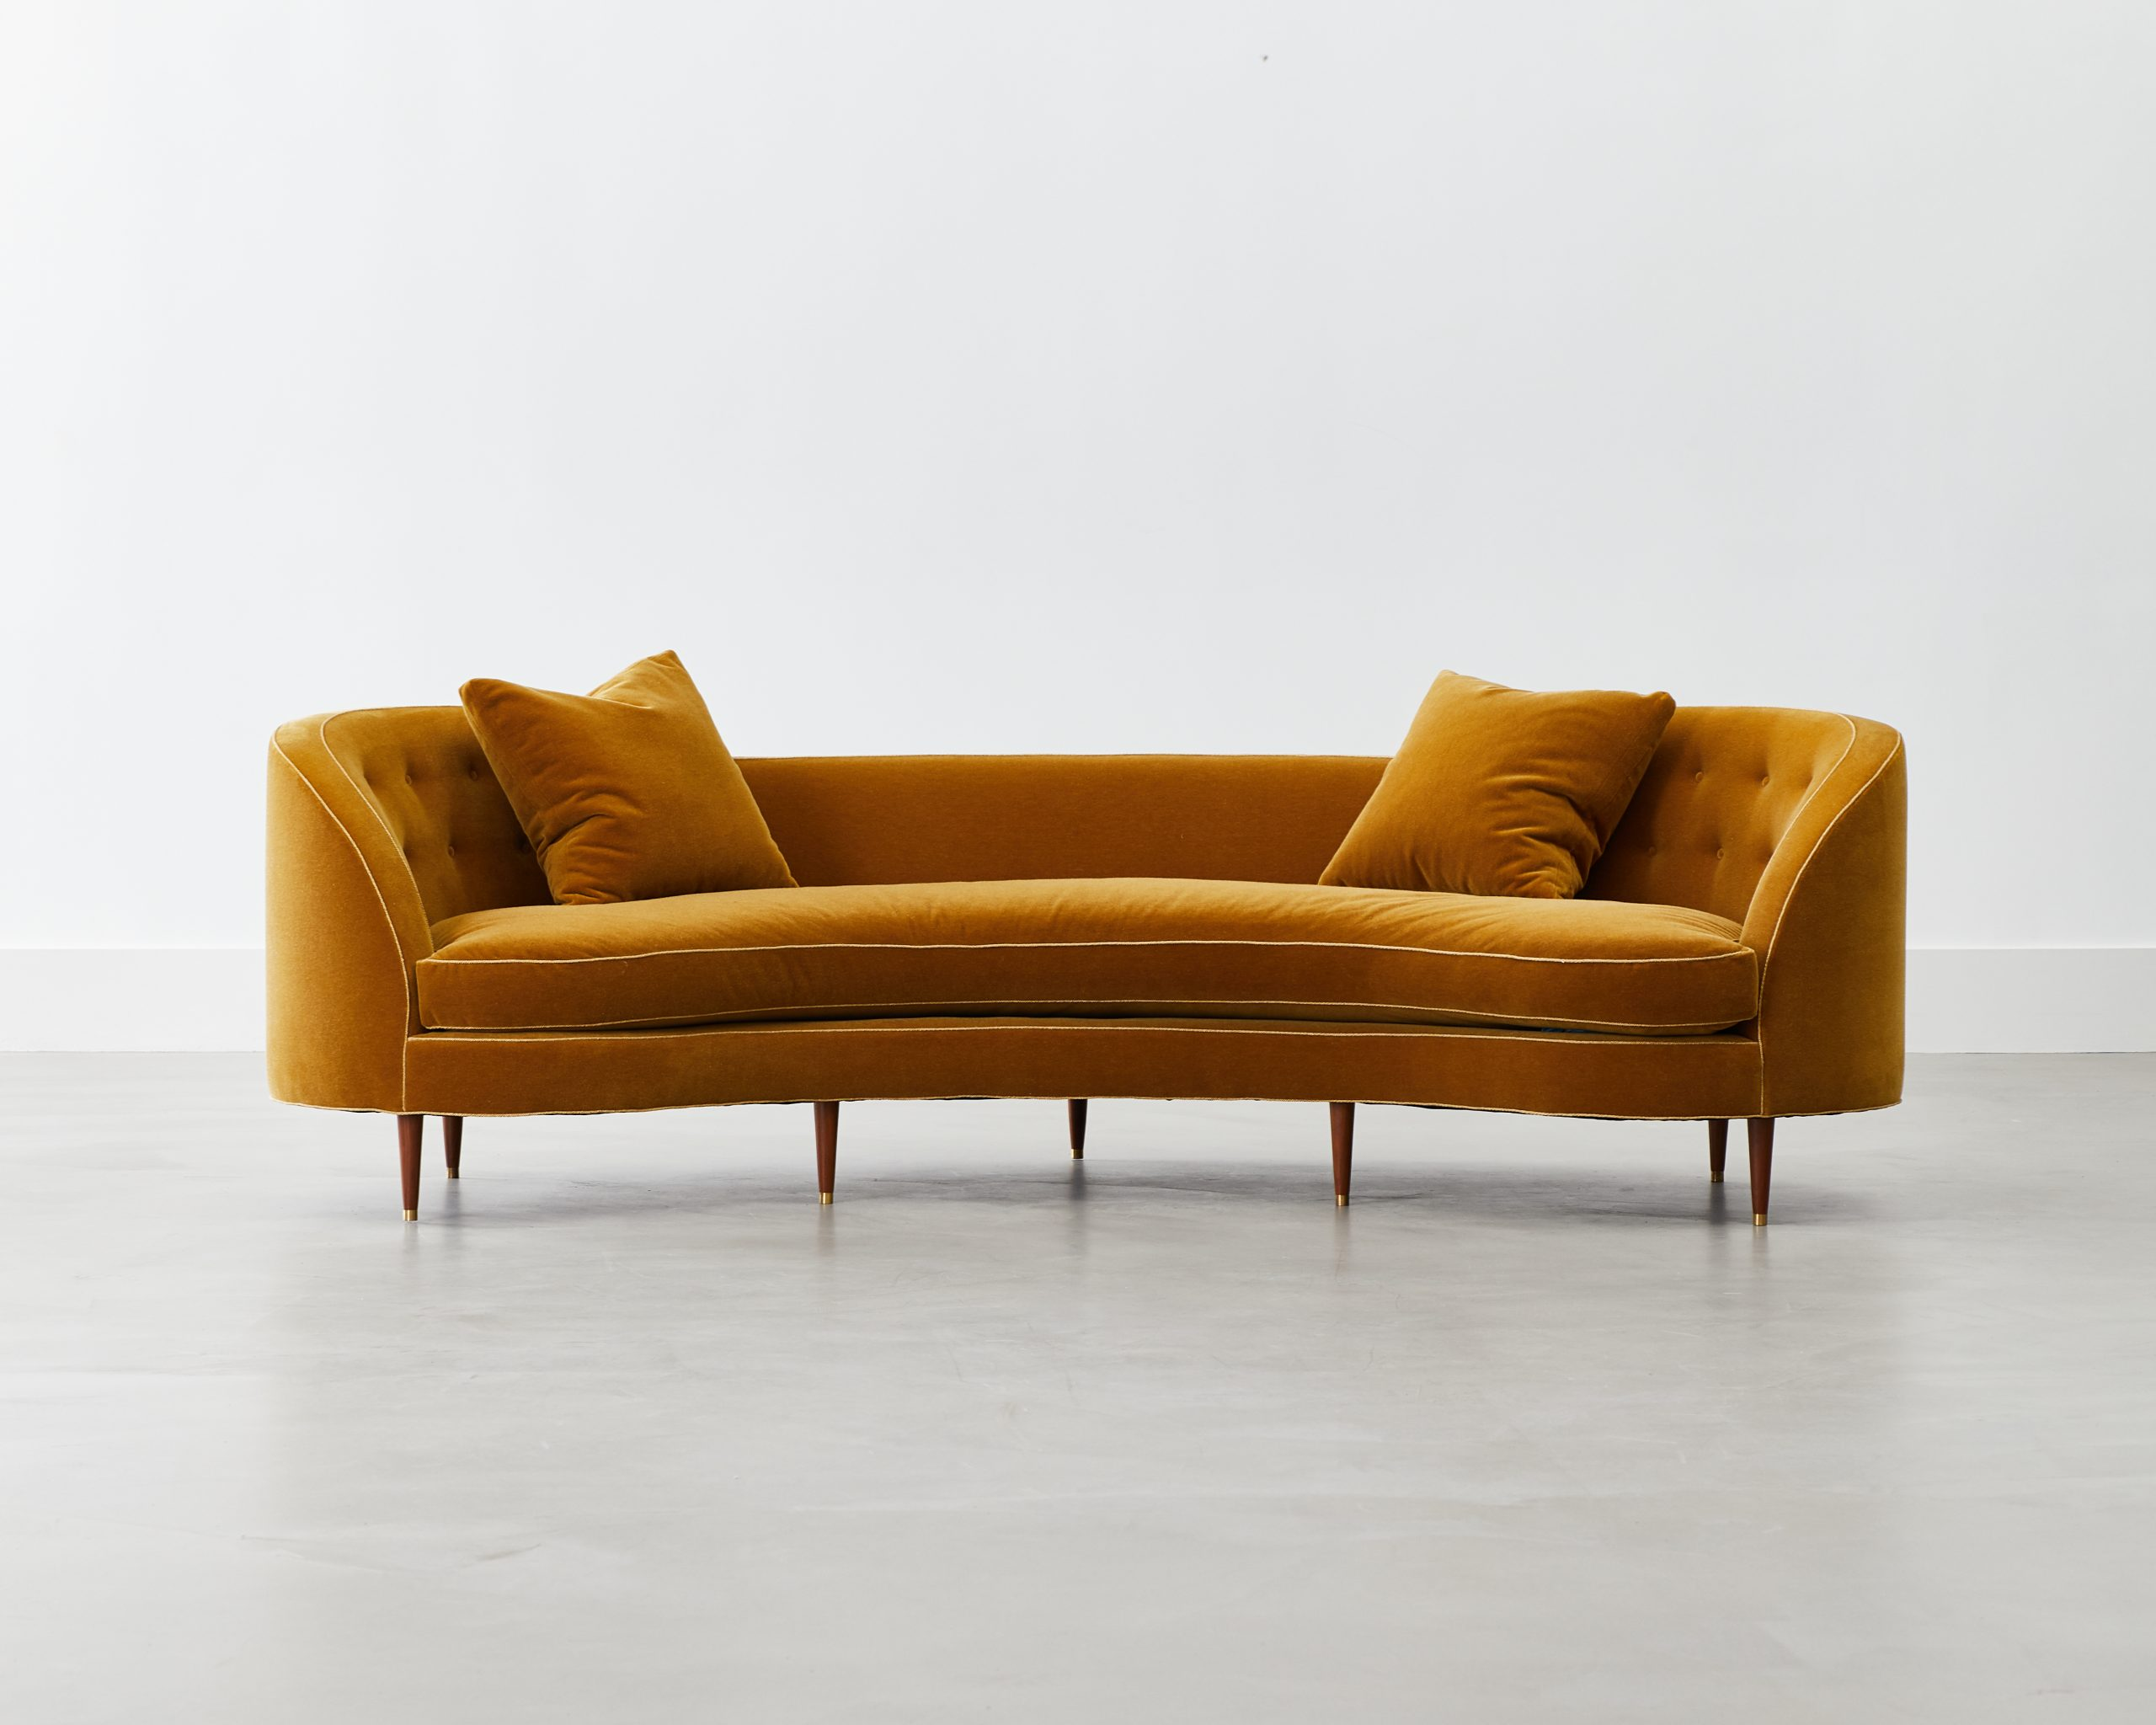 Oasis Sofa by COUP STUDIO